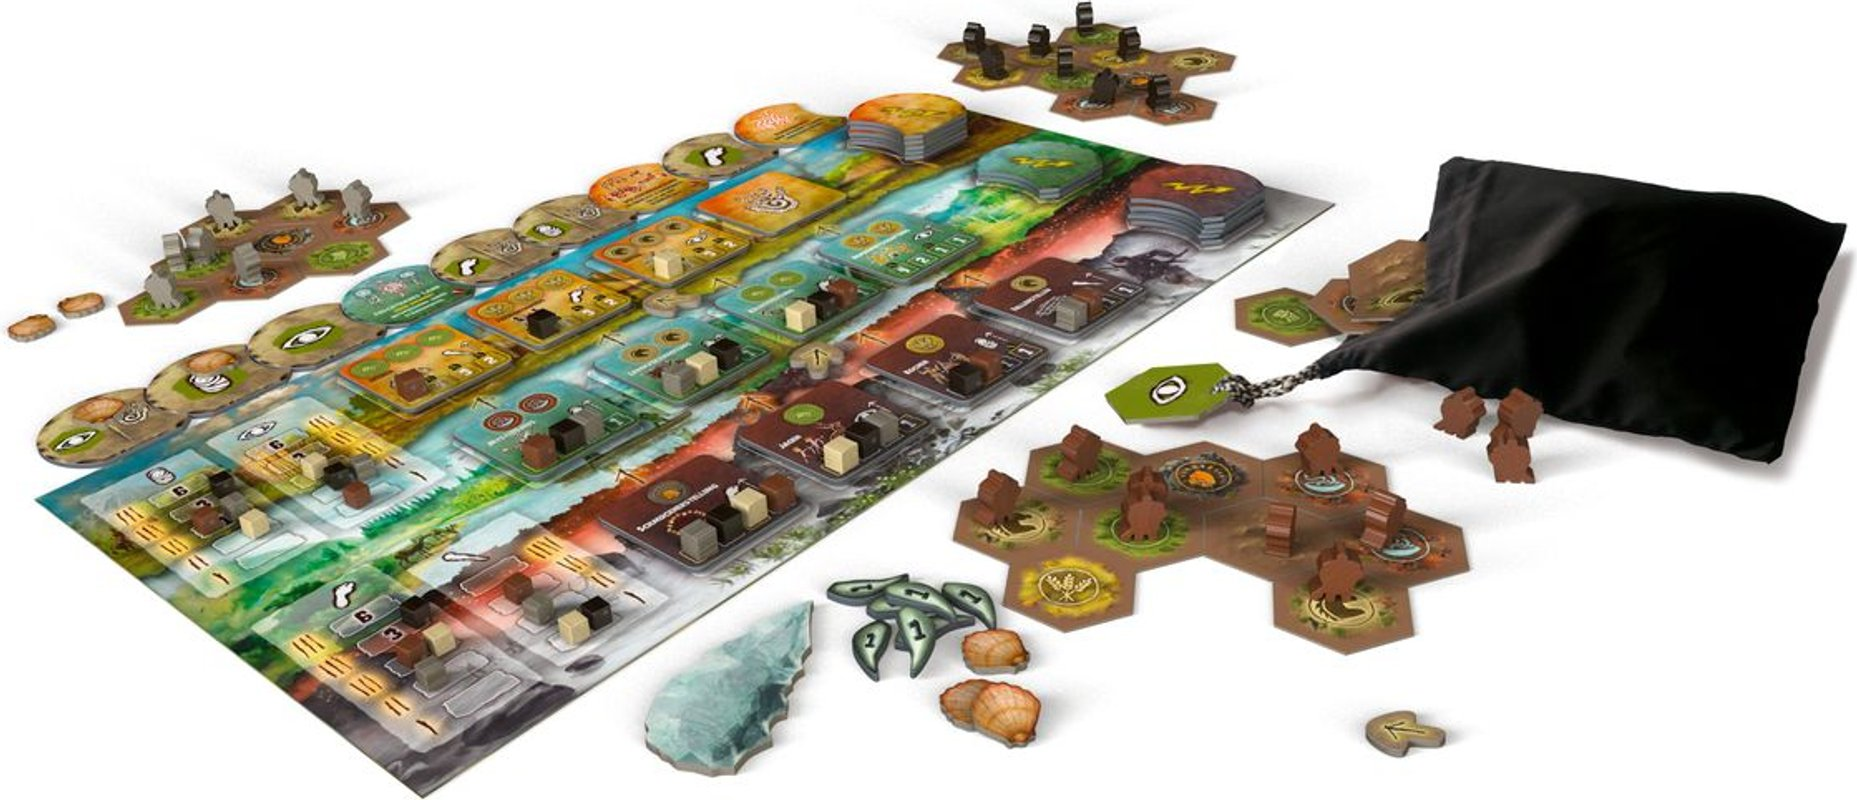 Tribes: Dawn of Humanity components